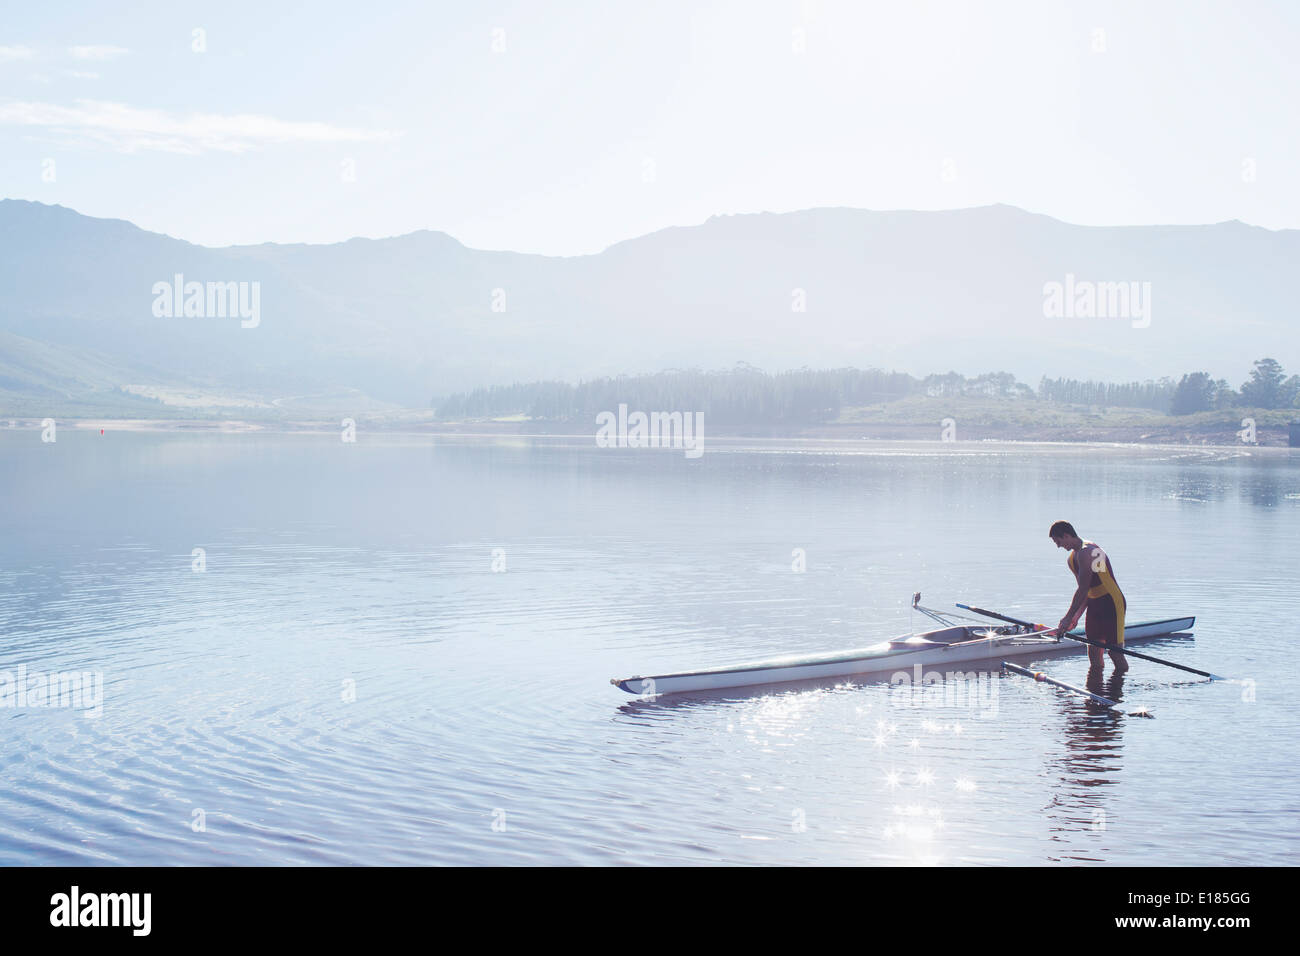 Man placing rowing scull in lake - Stock Image